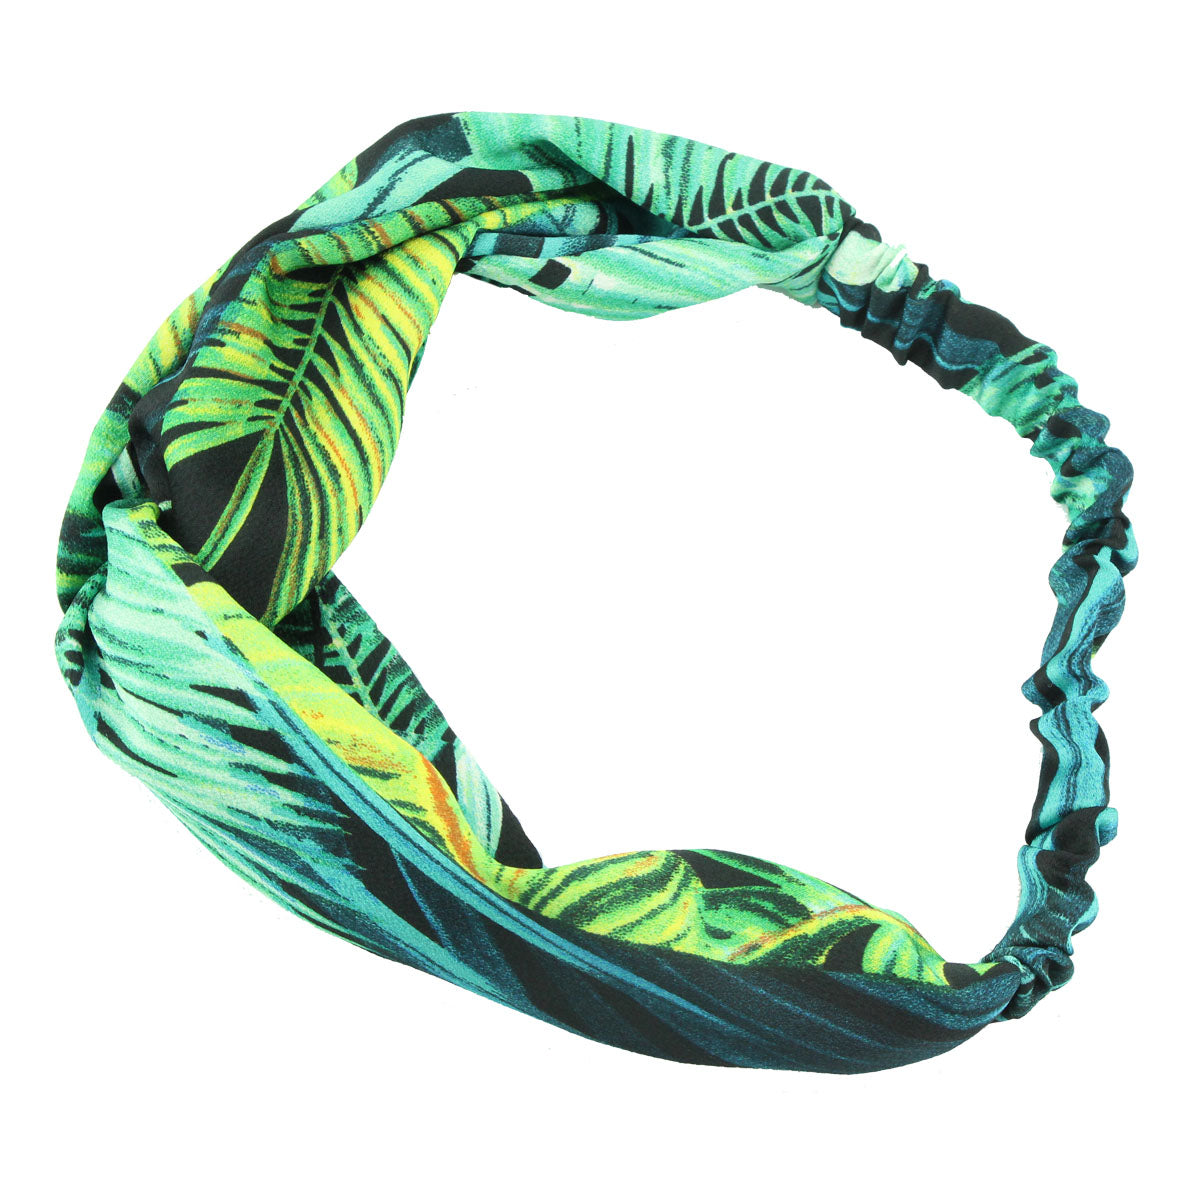 fabric custom print bandana Hawaii cross hairband wreath women twist headband wholesale at factory price 6766 - SOHOBUCKS CO.,LIMITED